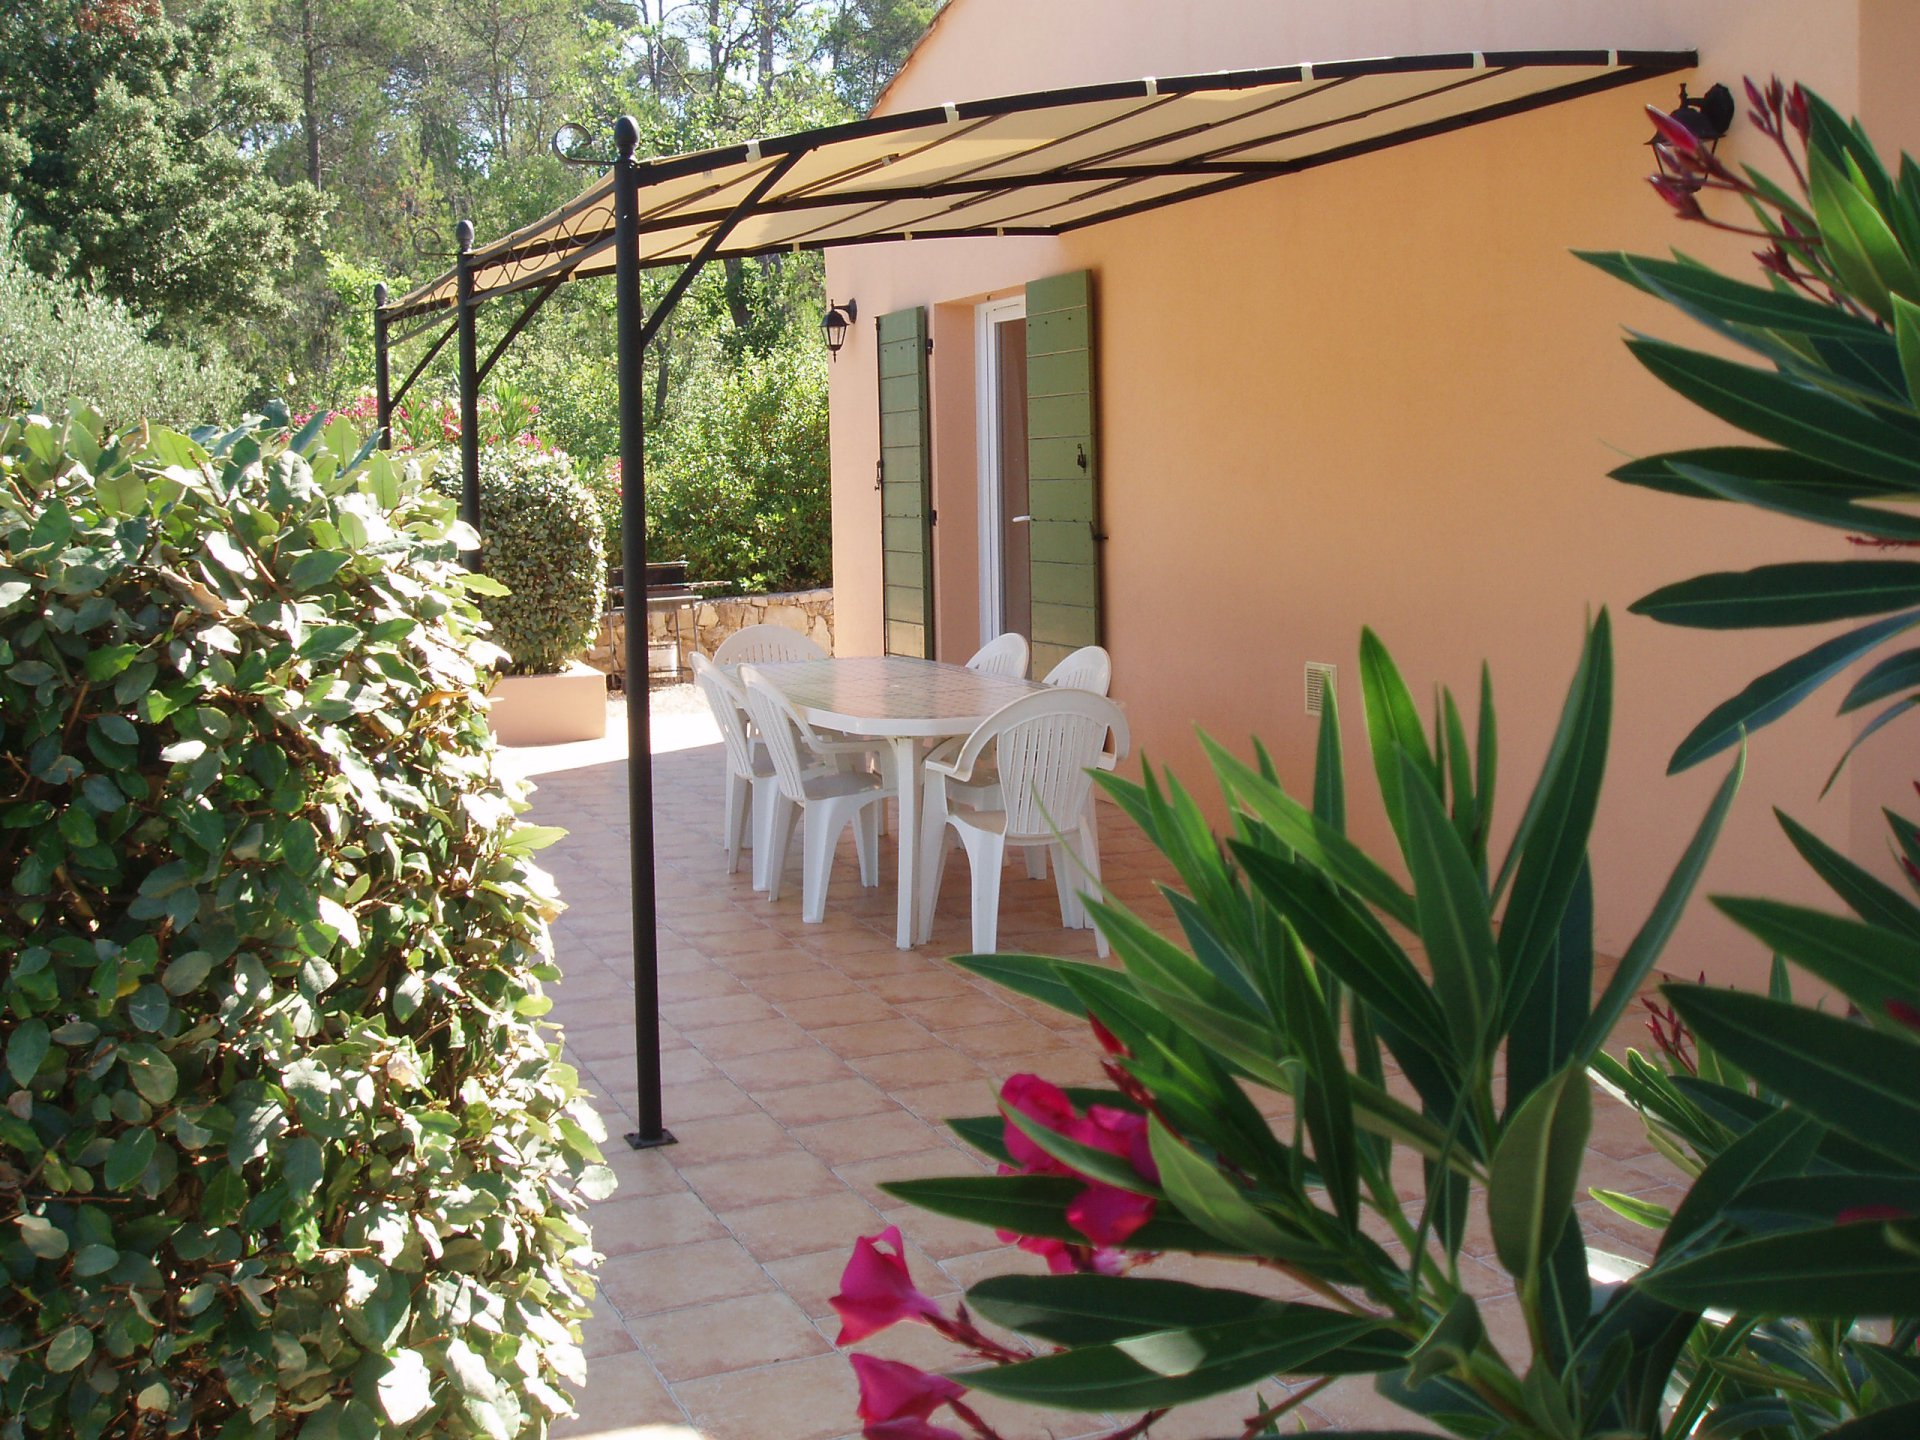 COTIGNAC Lovely house with pool in quiet environment close to Cotignac